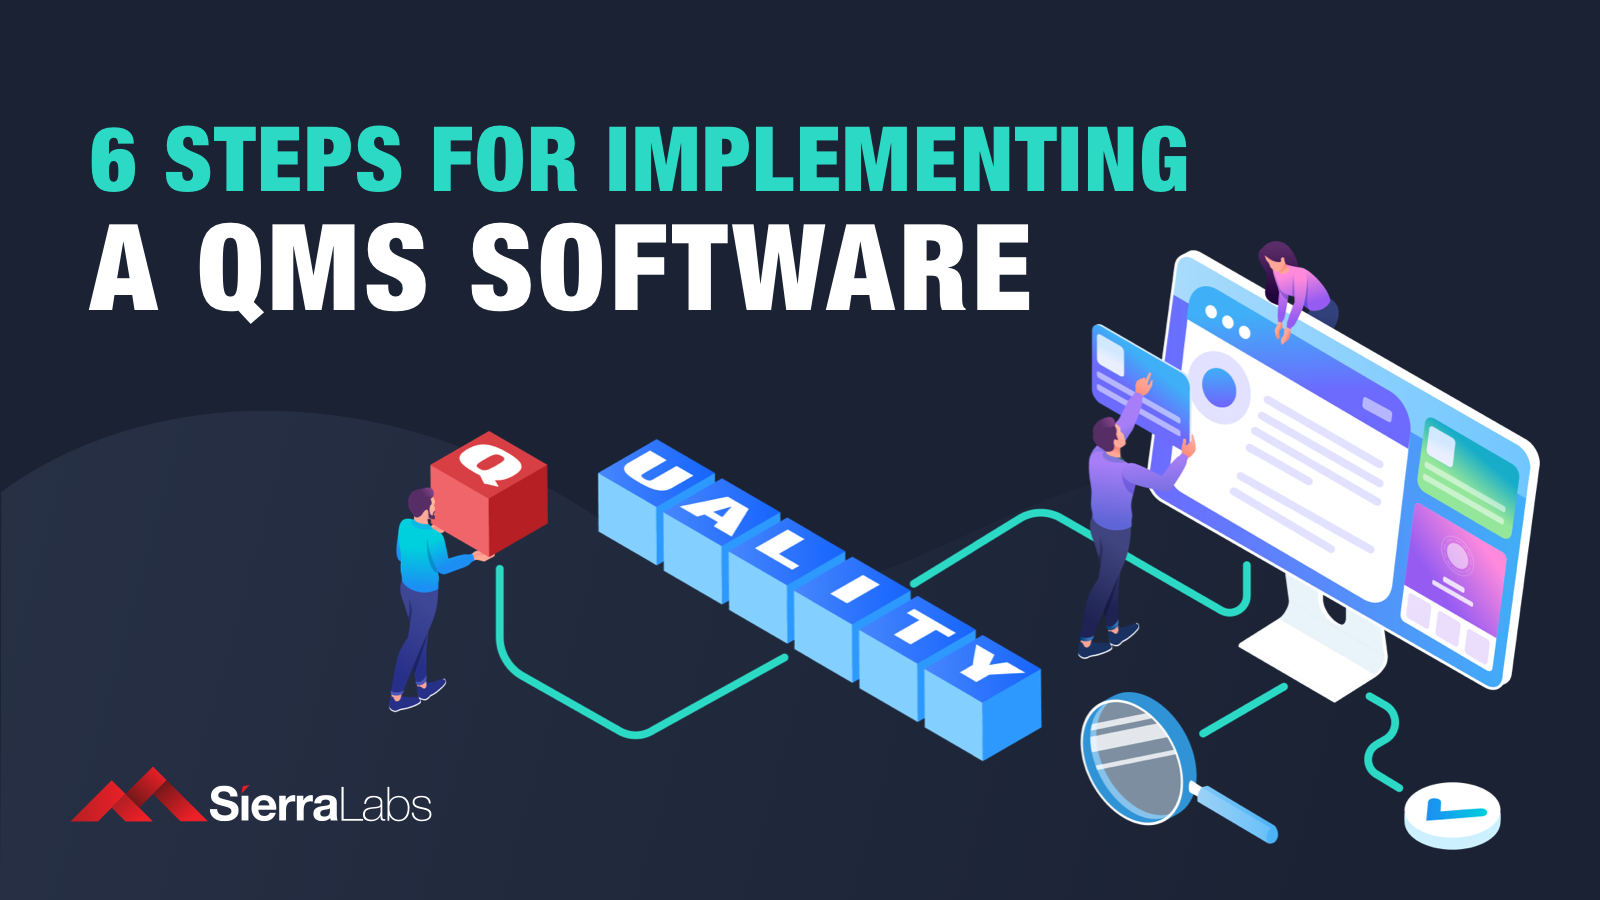 6 Steps to Implementing a QMS Software for Life Sciences